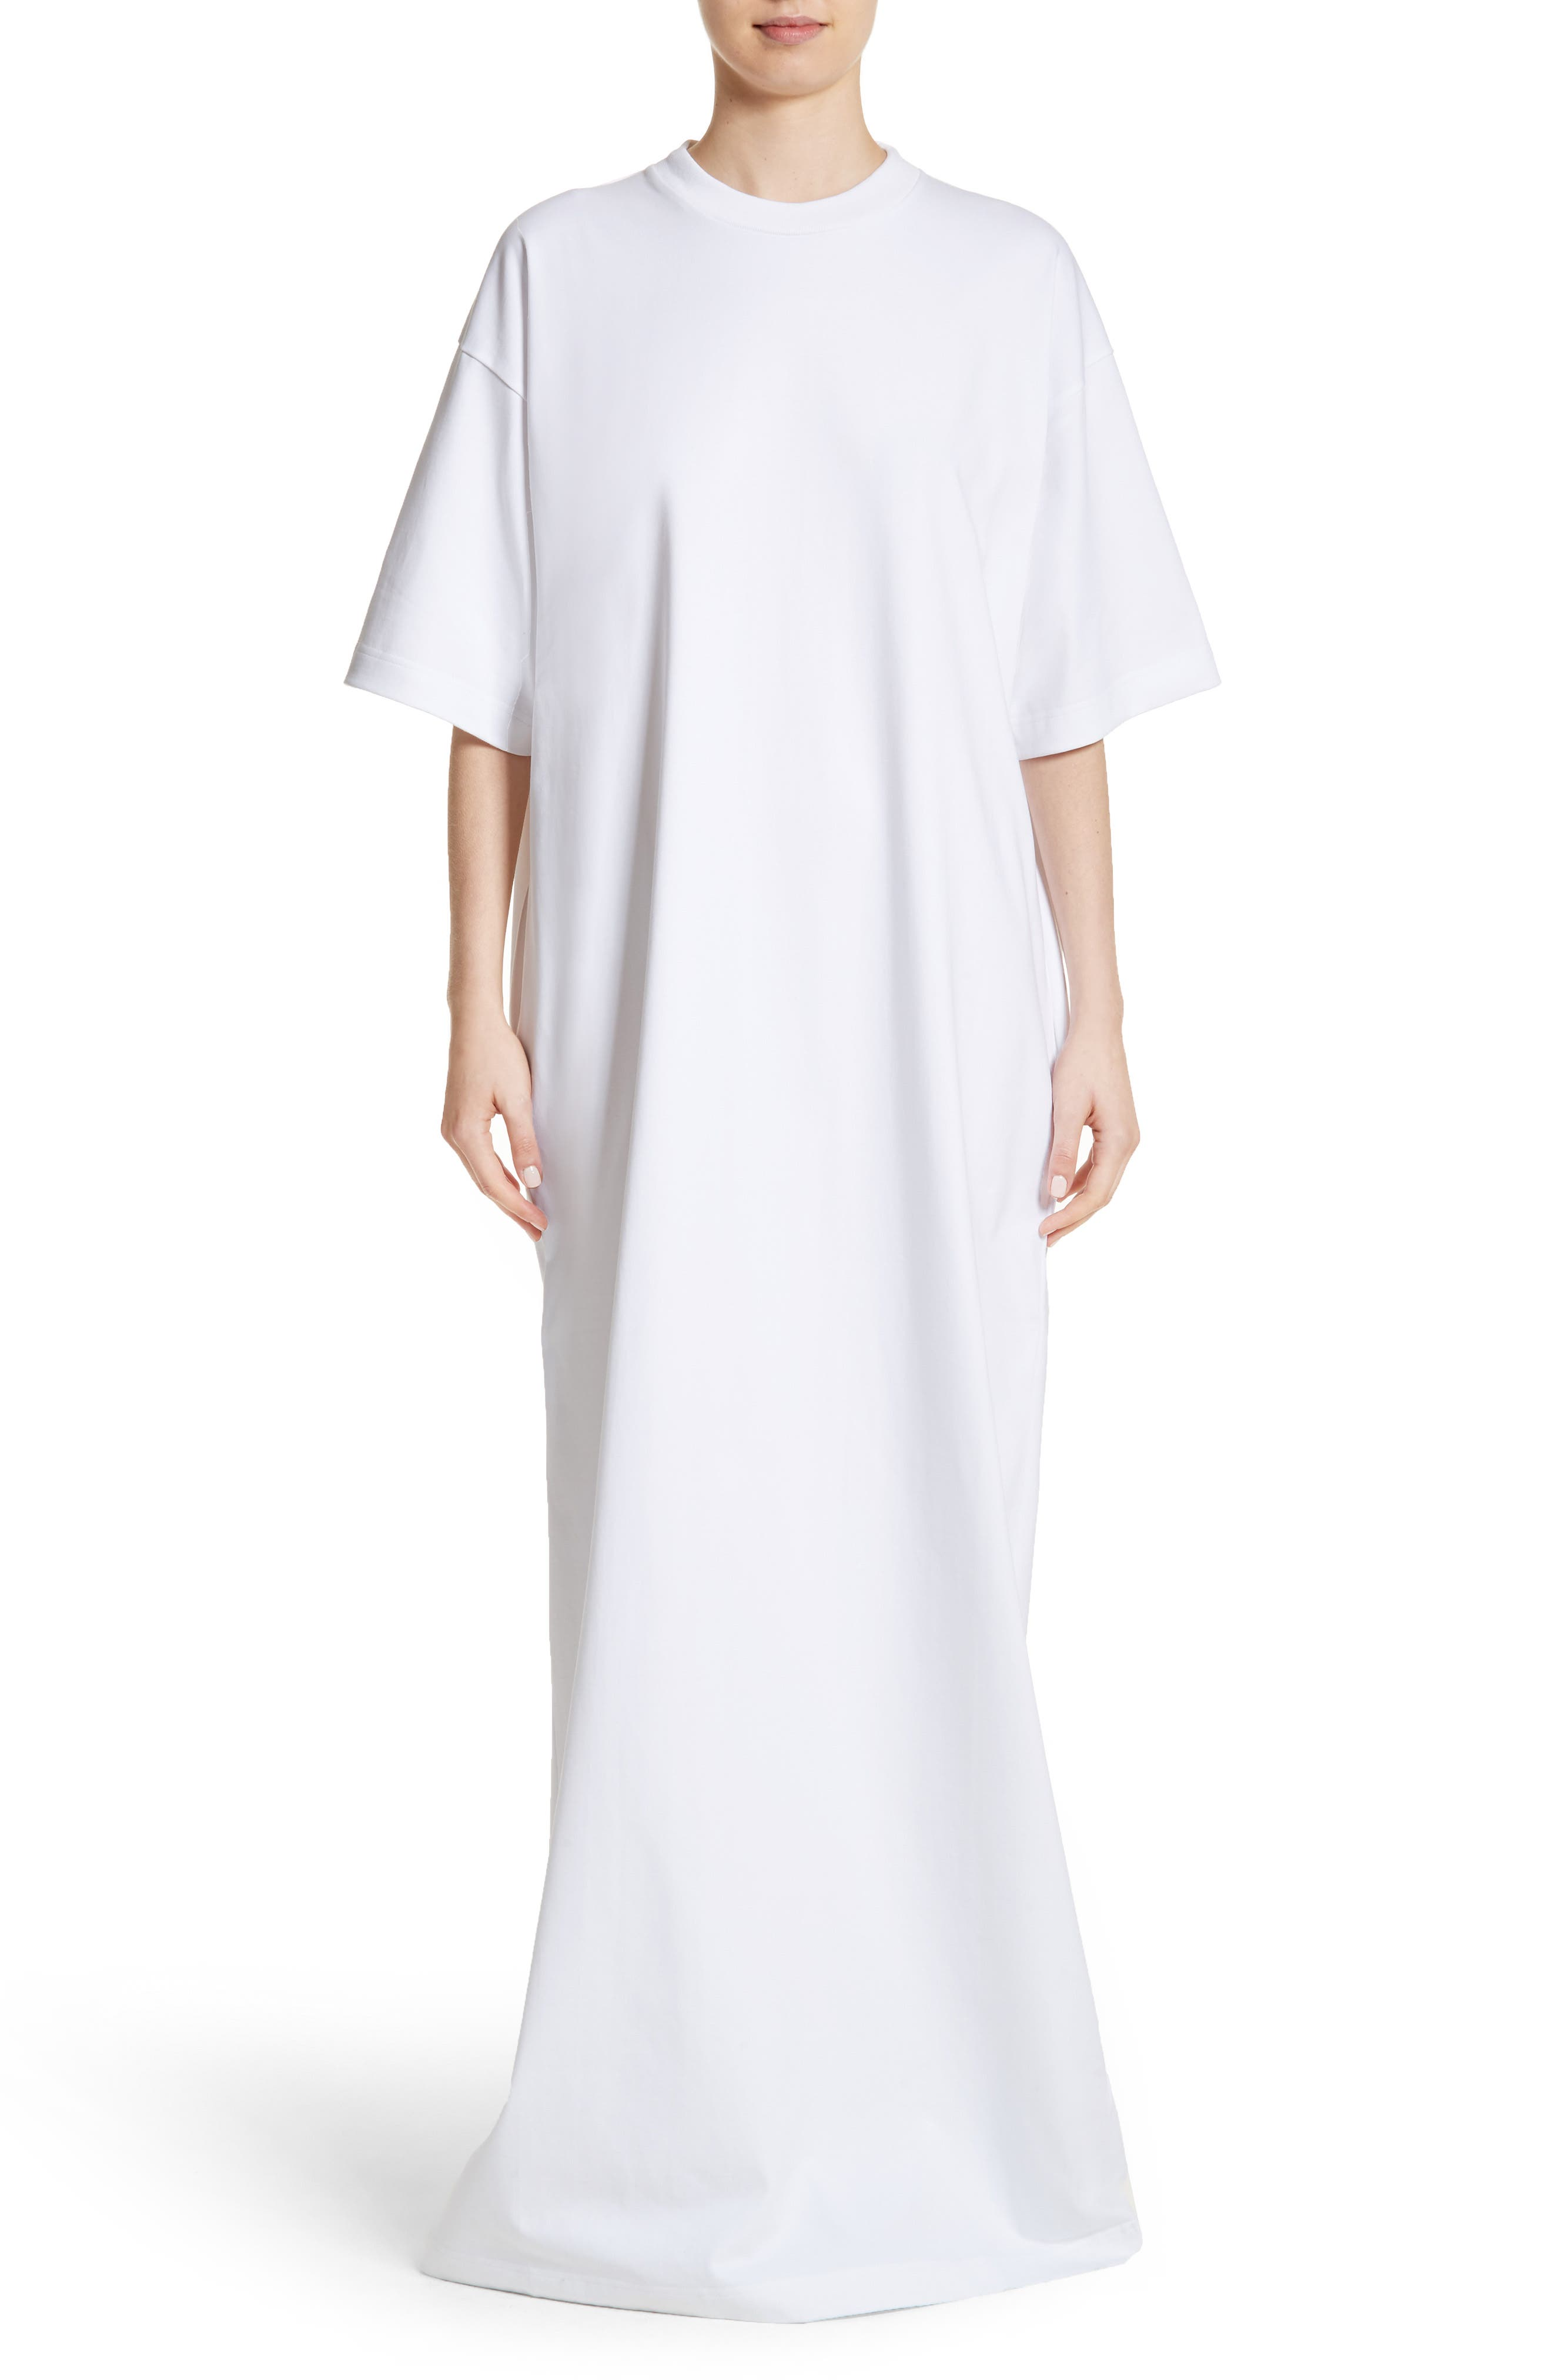 T-Shirt Dress,                             Main thumbnail 1, color,                             White